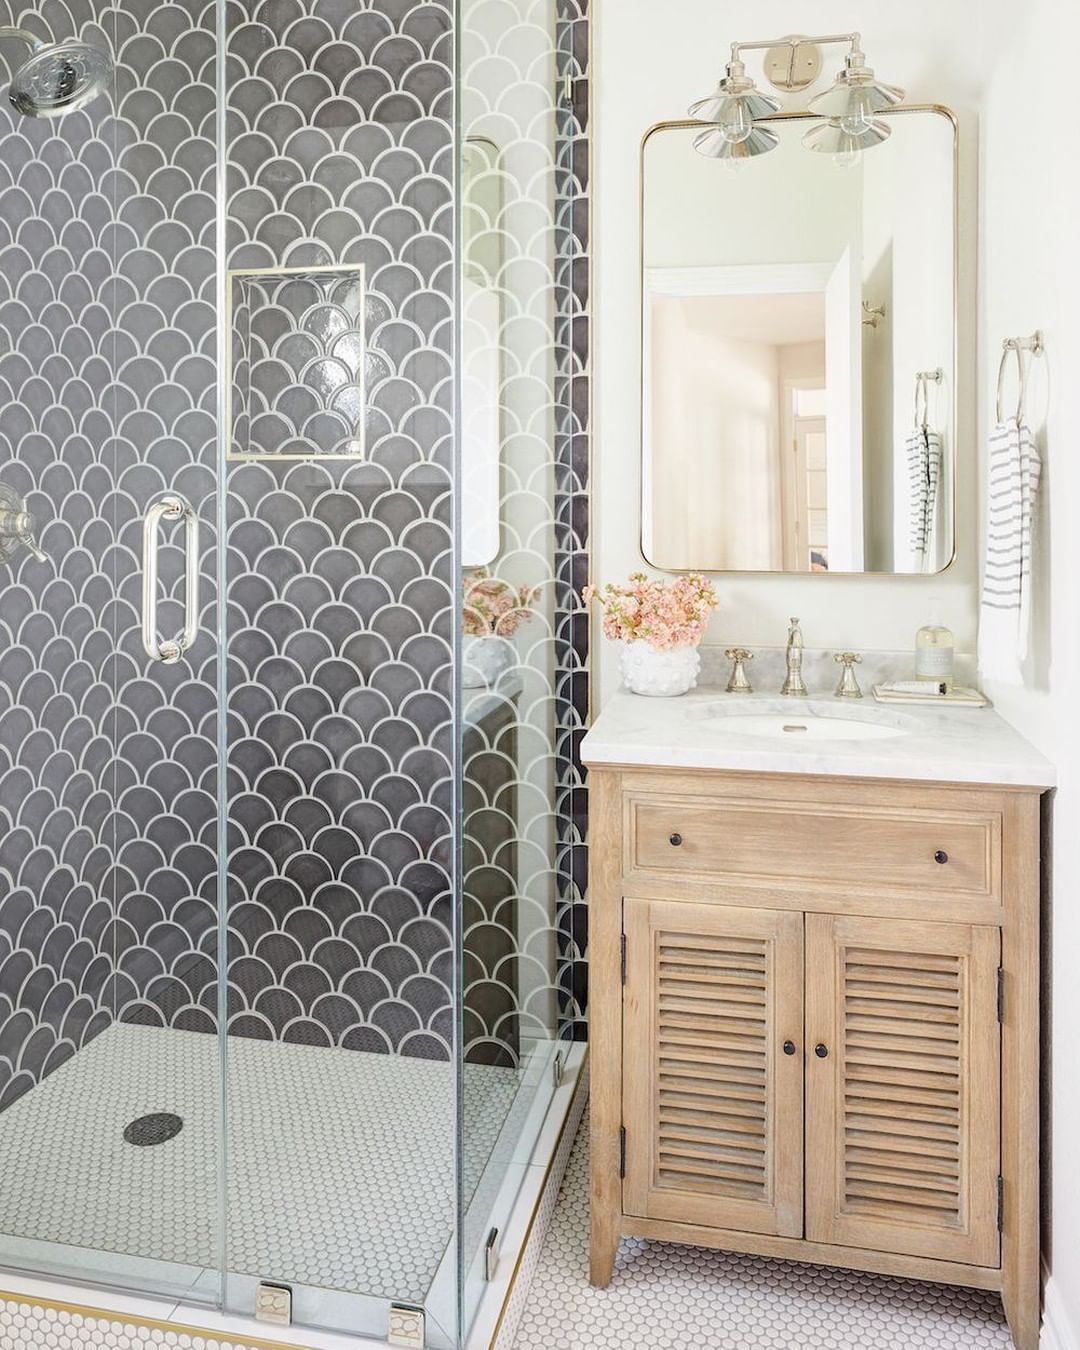 12 X 24 Tile On The Shower Walls With A Glass And Stone Mosaic Used On The Shower Floor And Border Restroom Remodel Bathroom Layout Bathroom Remodel Shower